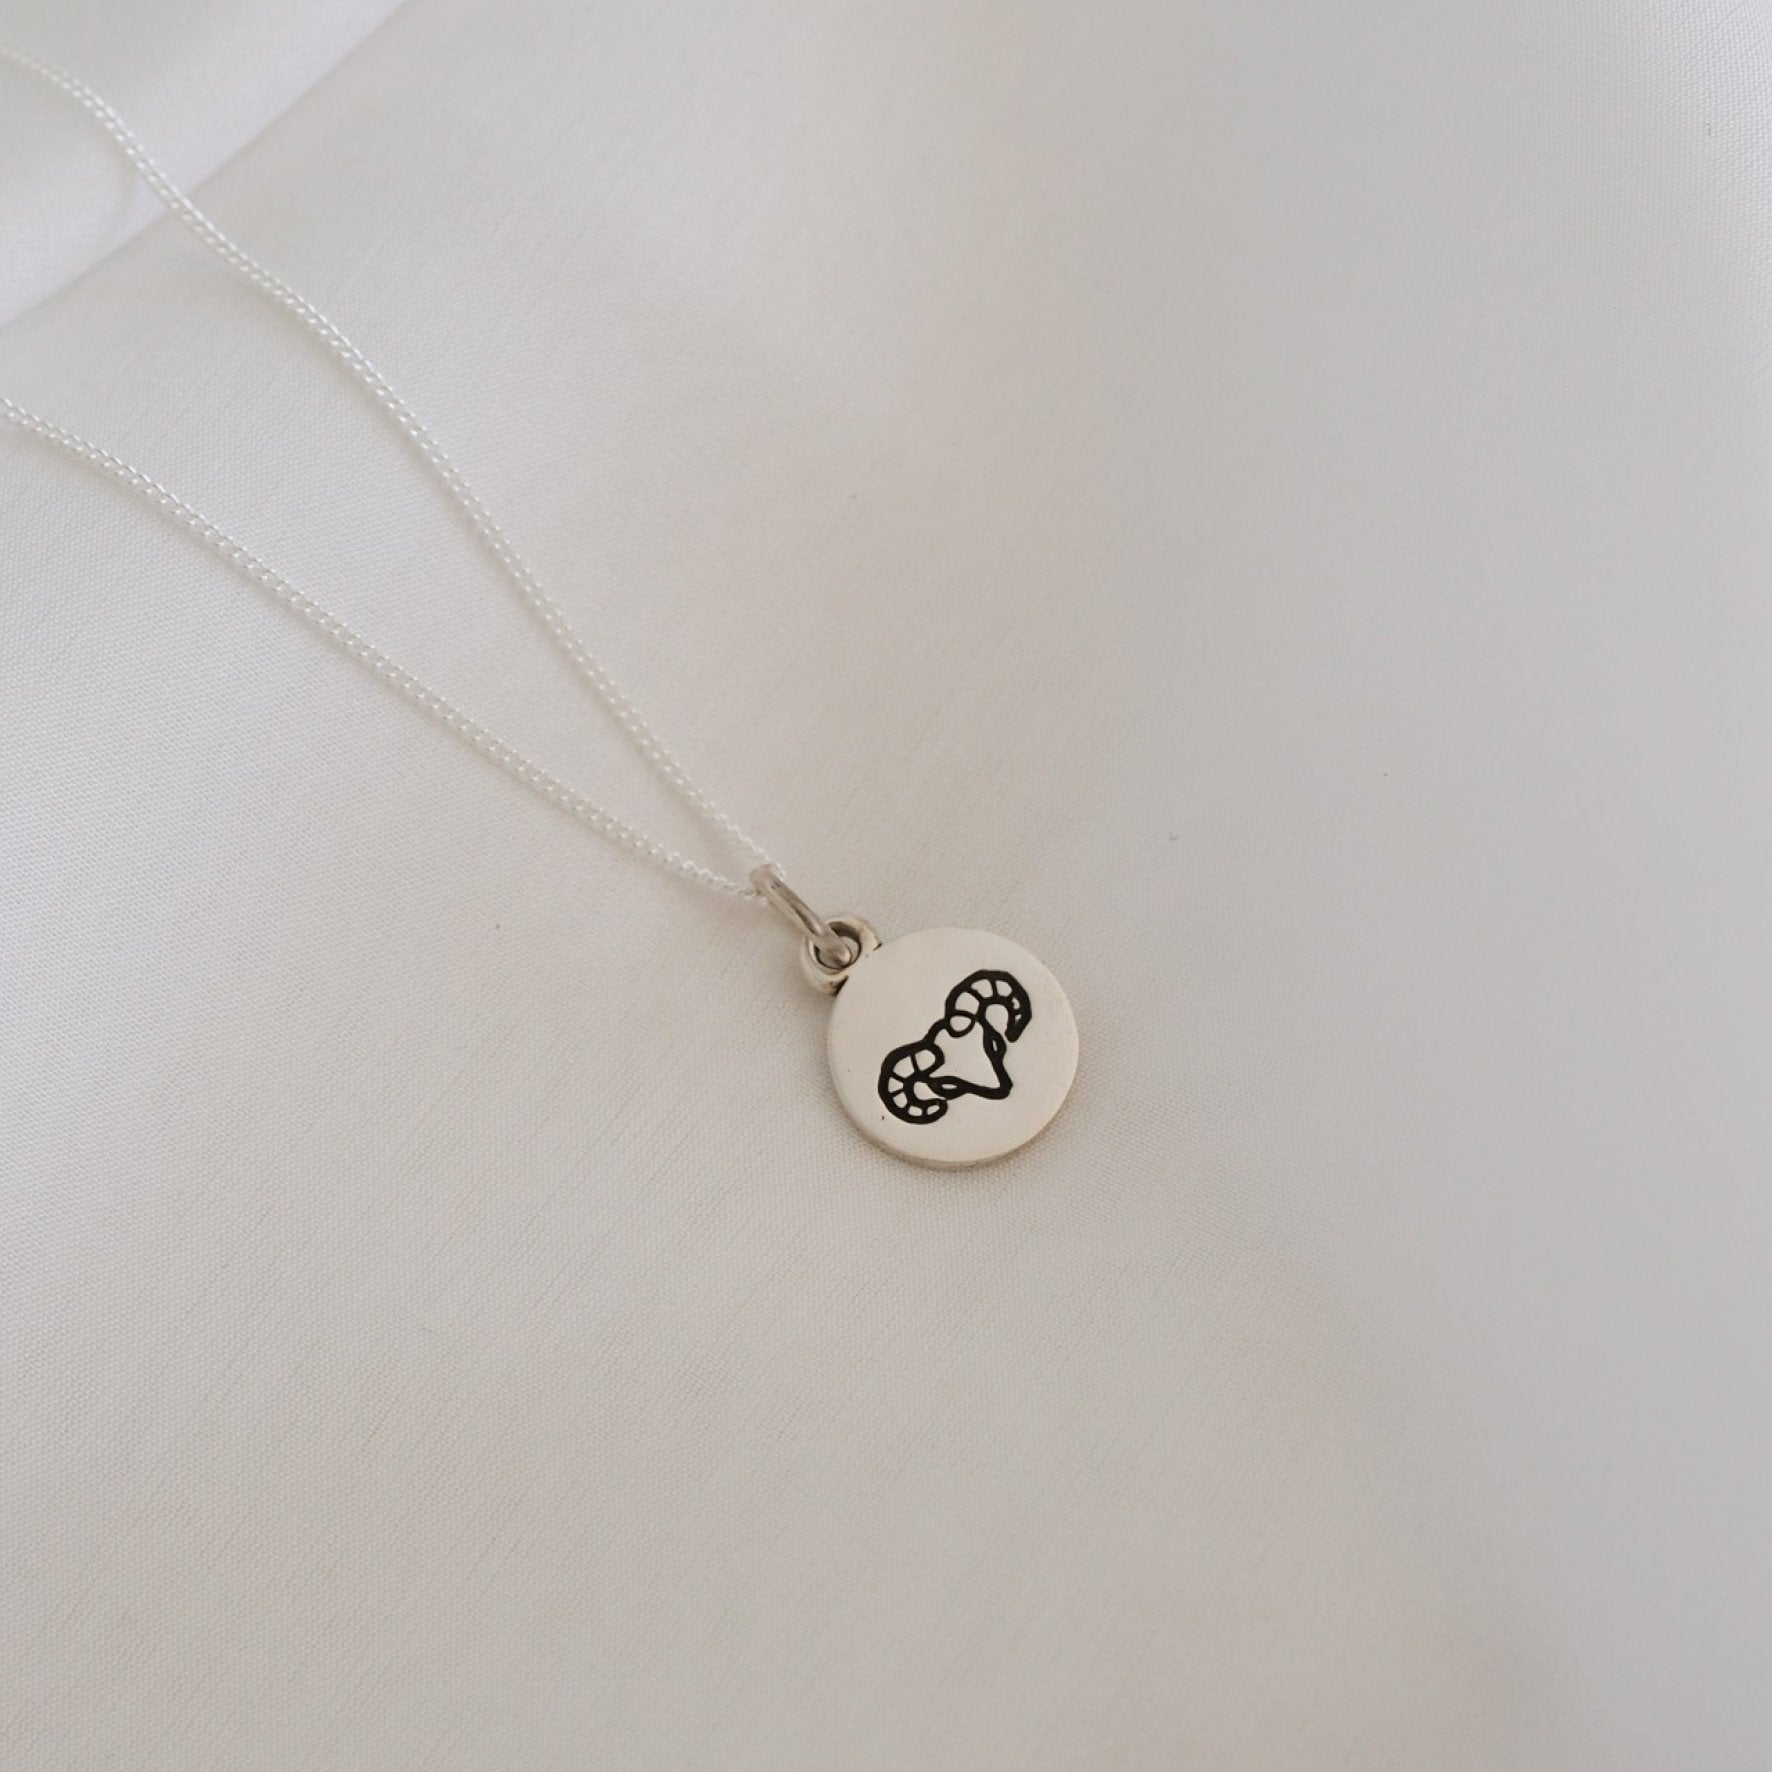 Aries Mini Zodiac Necklace - Silver